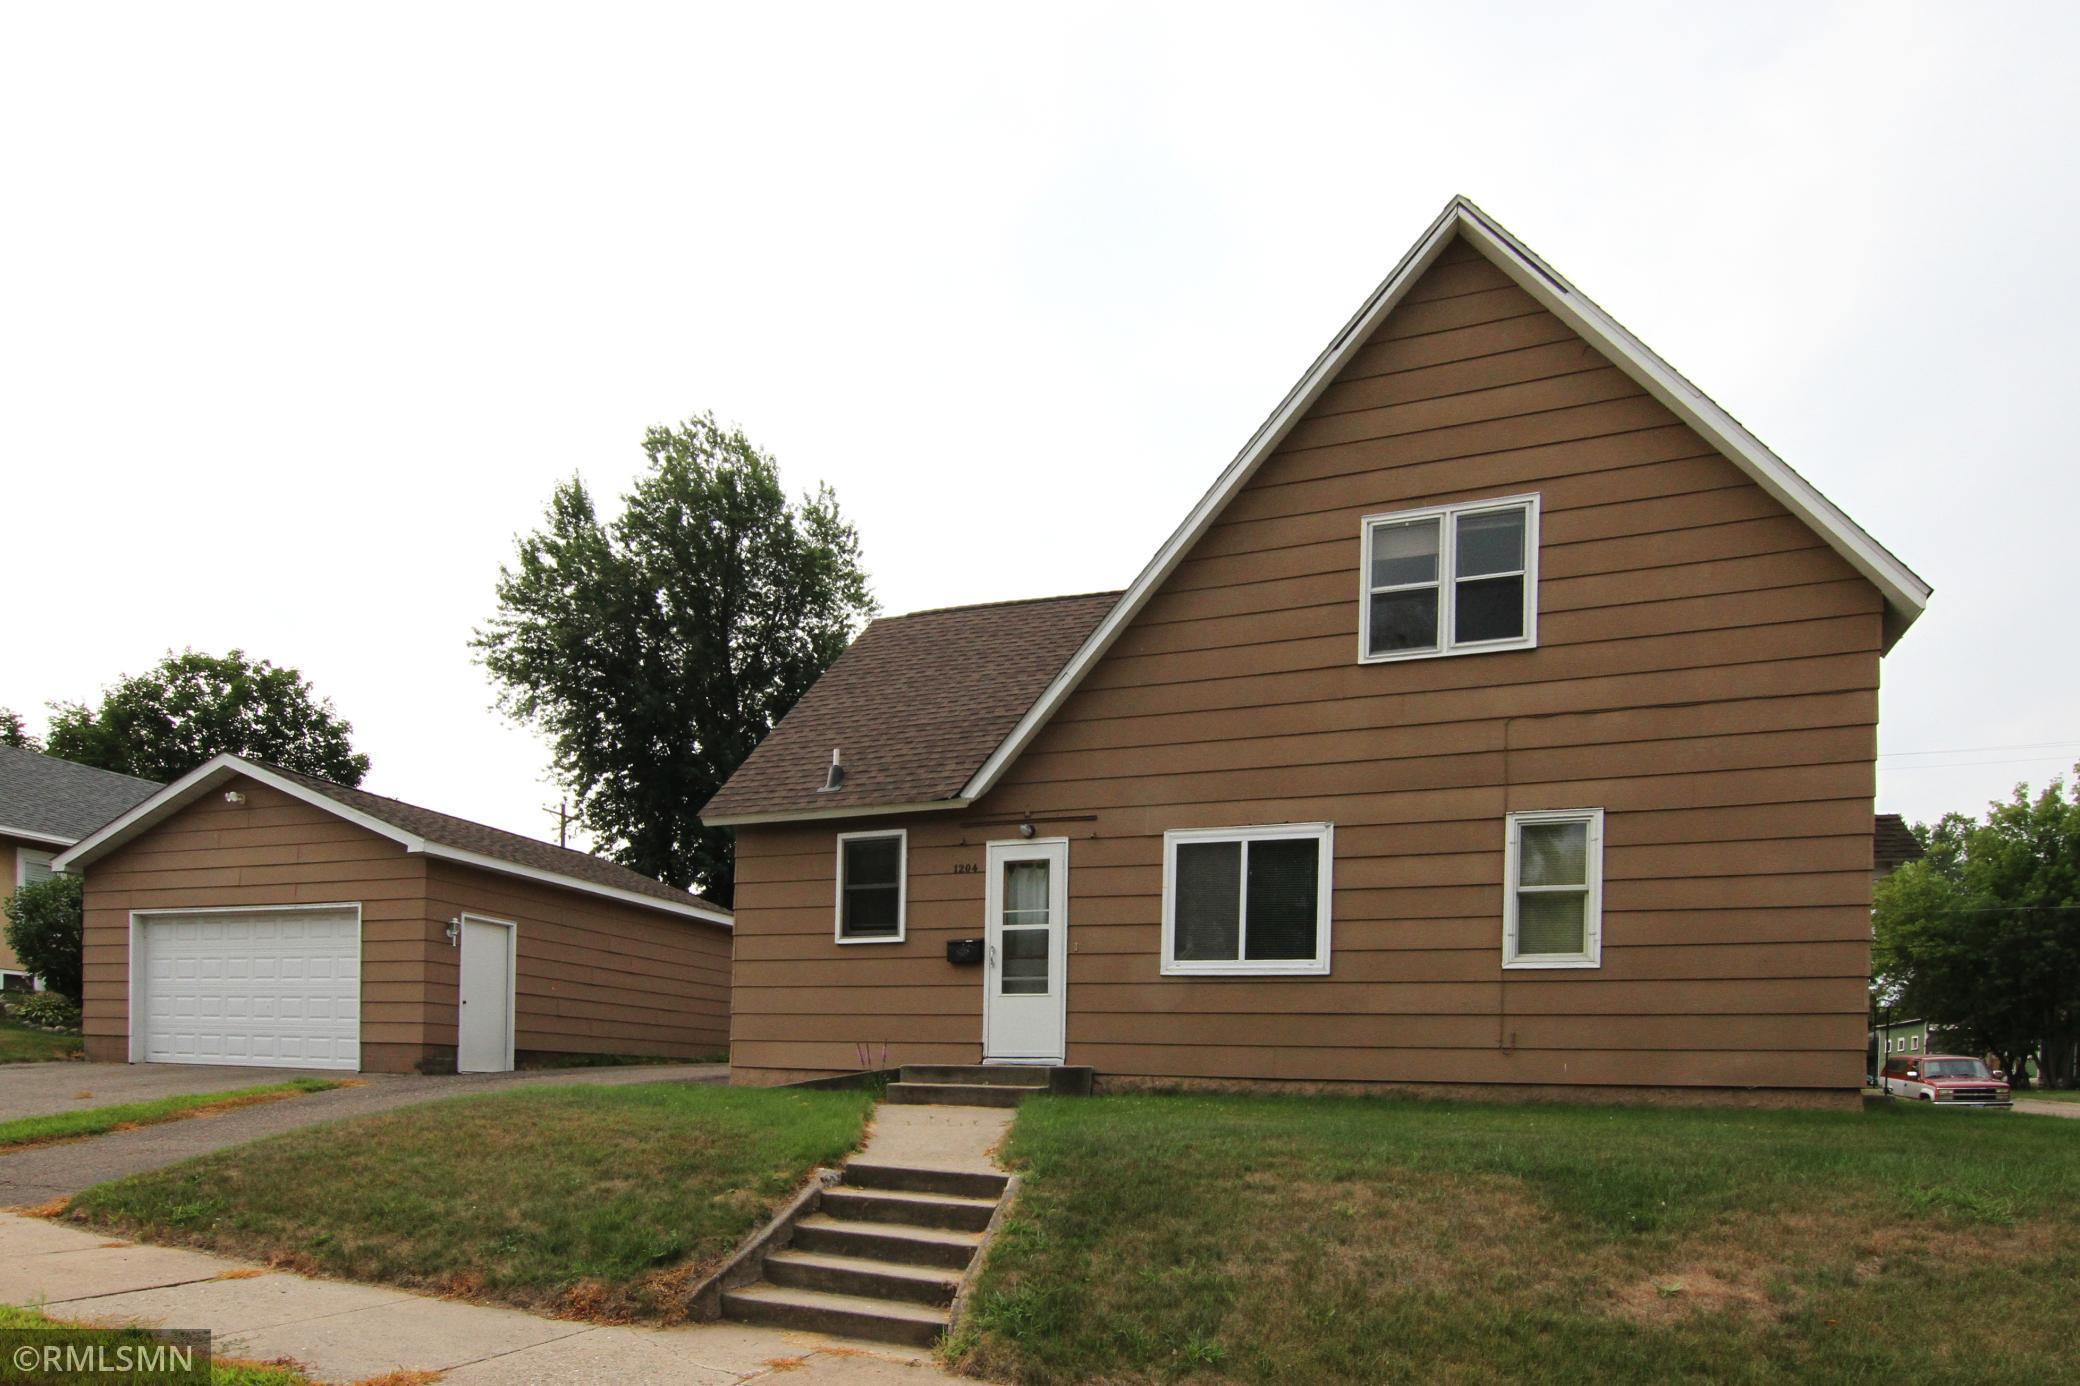 Nicely kept Brainerd home with 3 Bedrooms plus an office, 2 baths, insulated 2 car garage and a single car garage on a quiet corner lot.   The roof is  a couple years old and some of the  windows have been replaced.  Don't miss out on seeing this one!